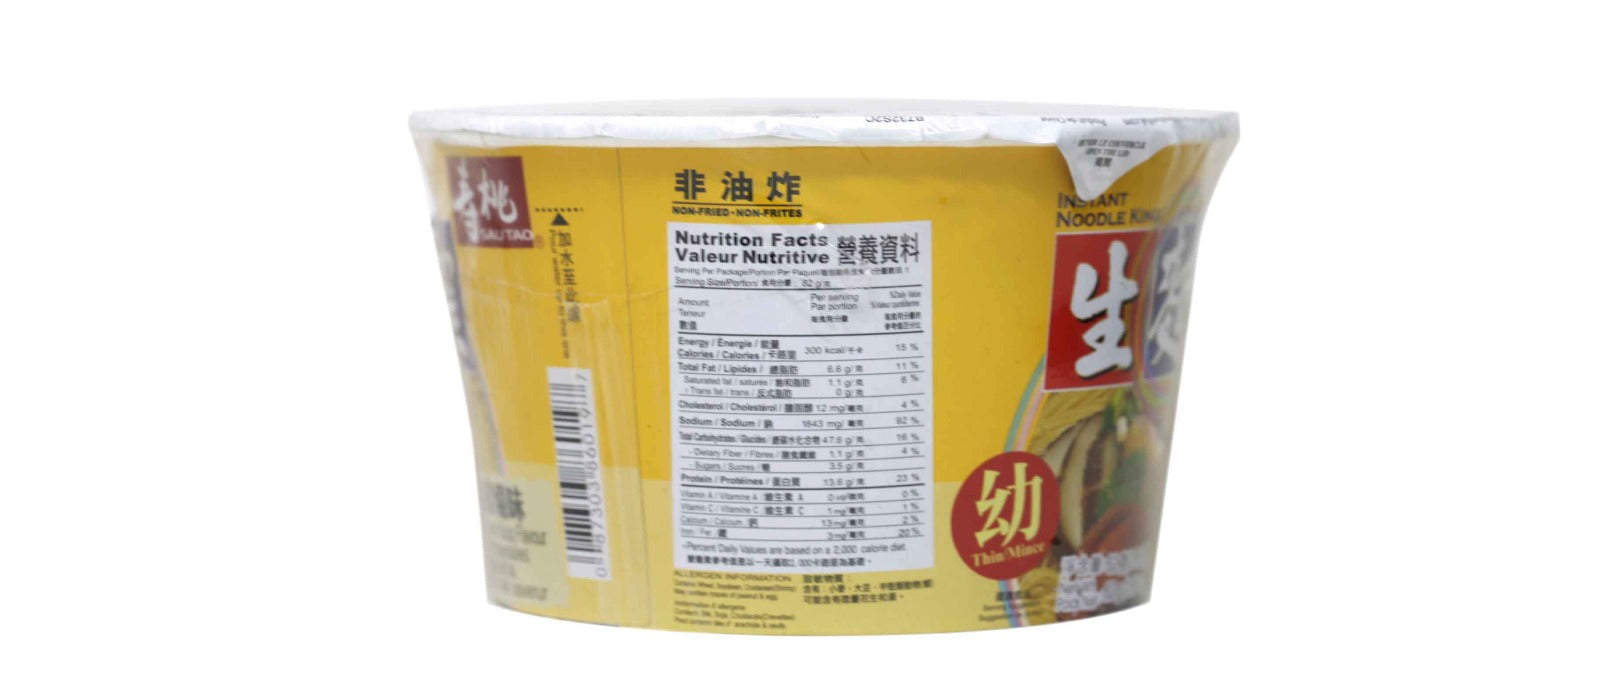 SAUTAO Instant Thin / Mince Vermicelli Noodle King Abalone and Chicken Soup Flavour Big Bowl - 2.89 Oz (82 g)